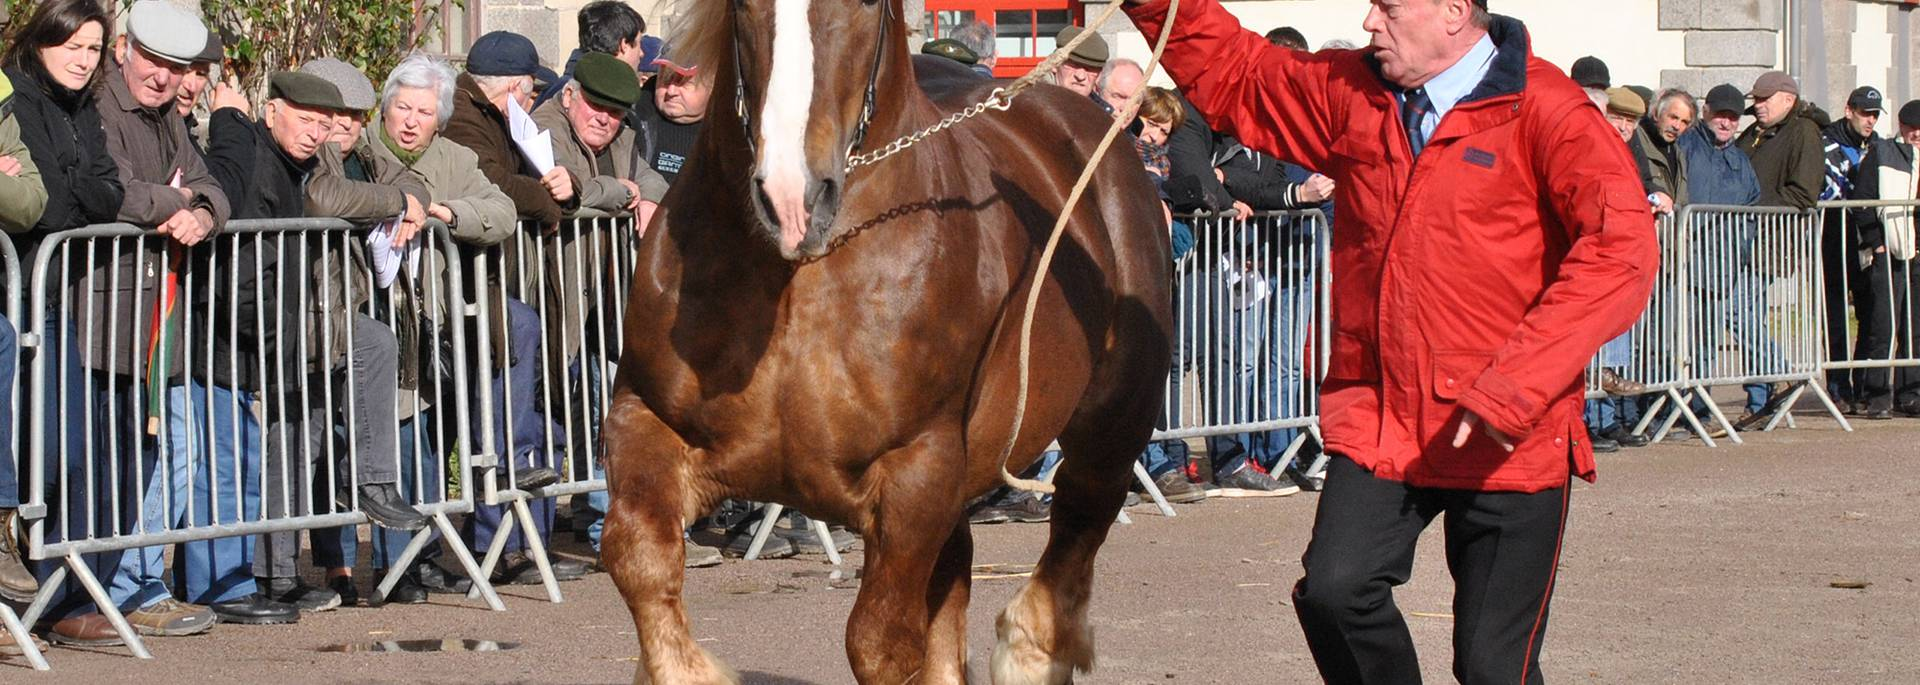 Spectacle cheval haras national de Lamballe